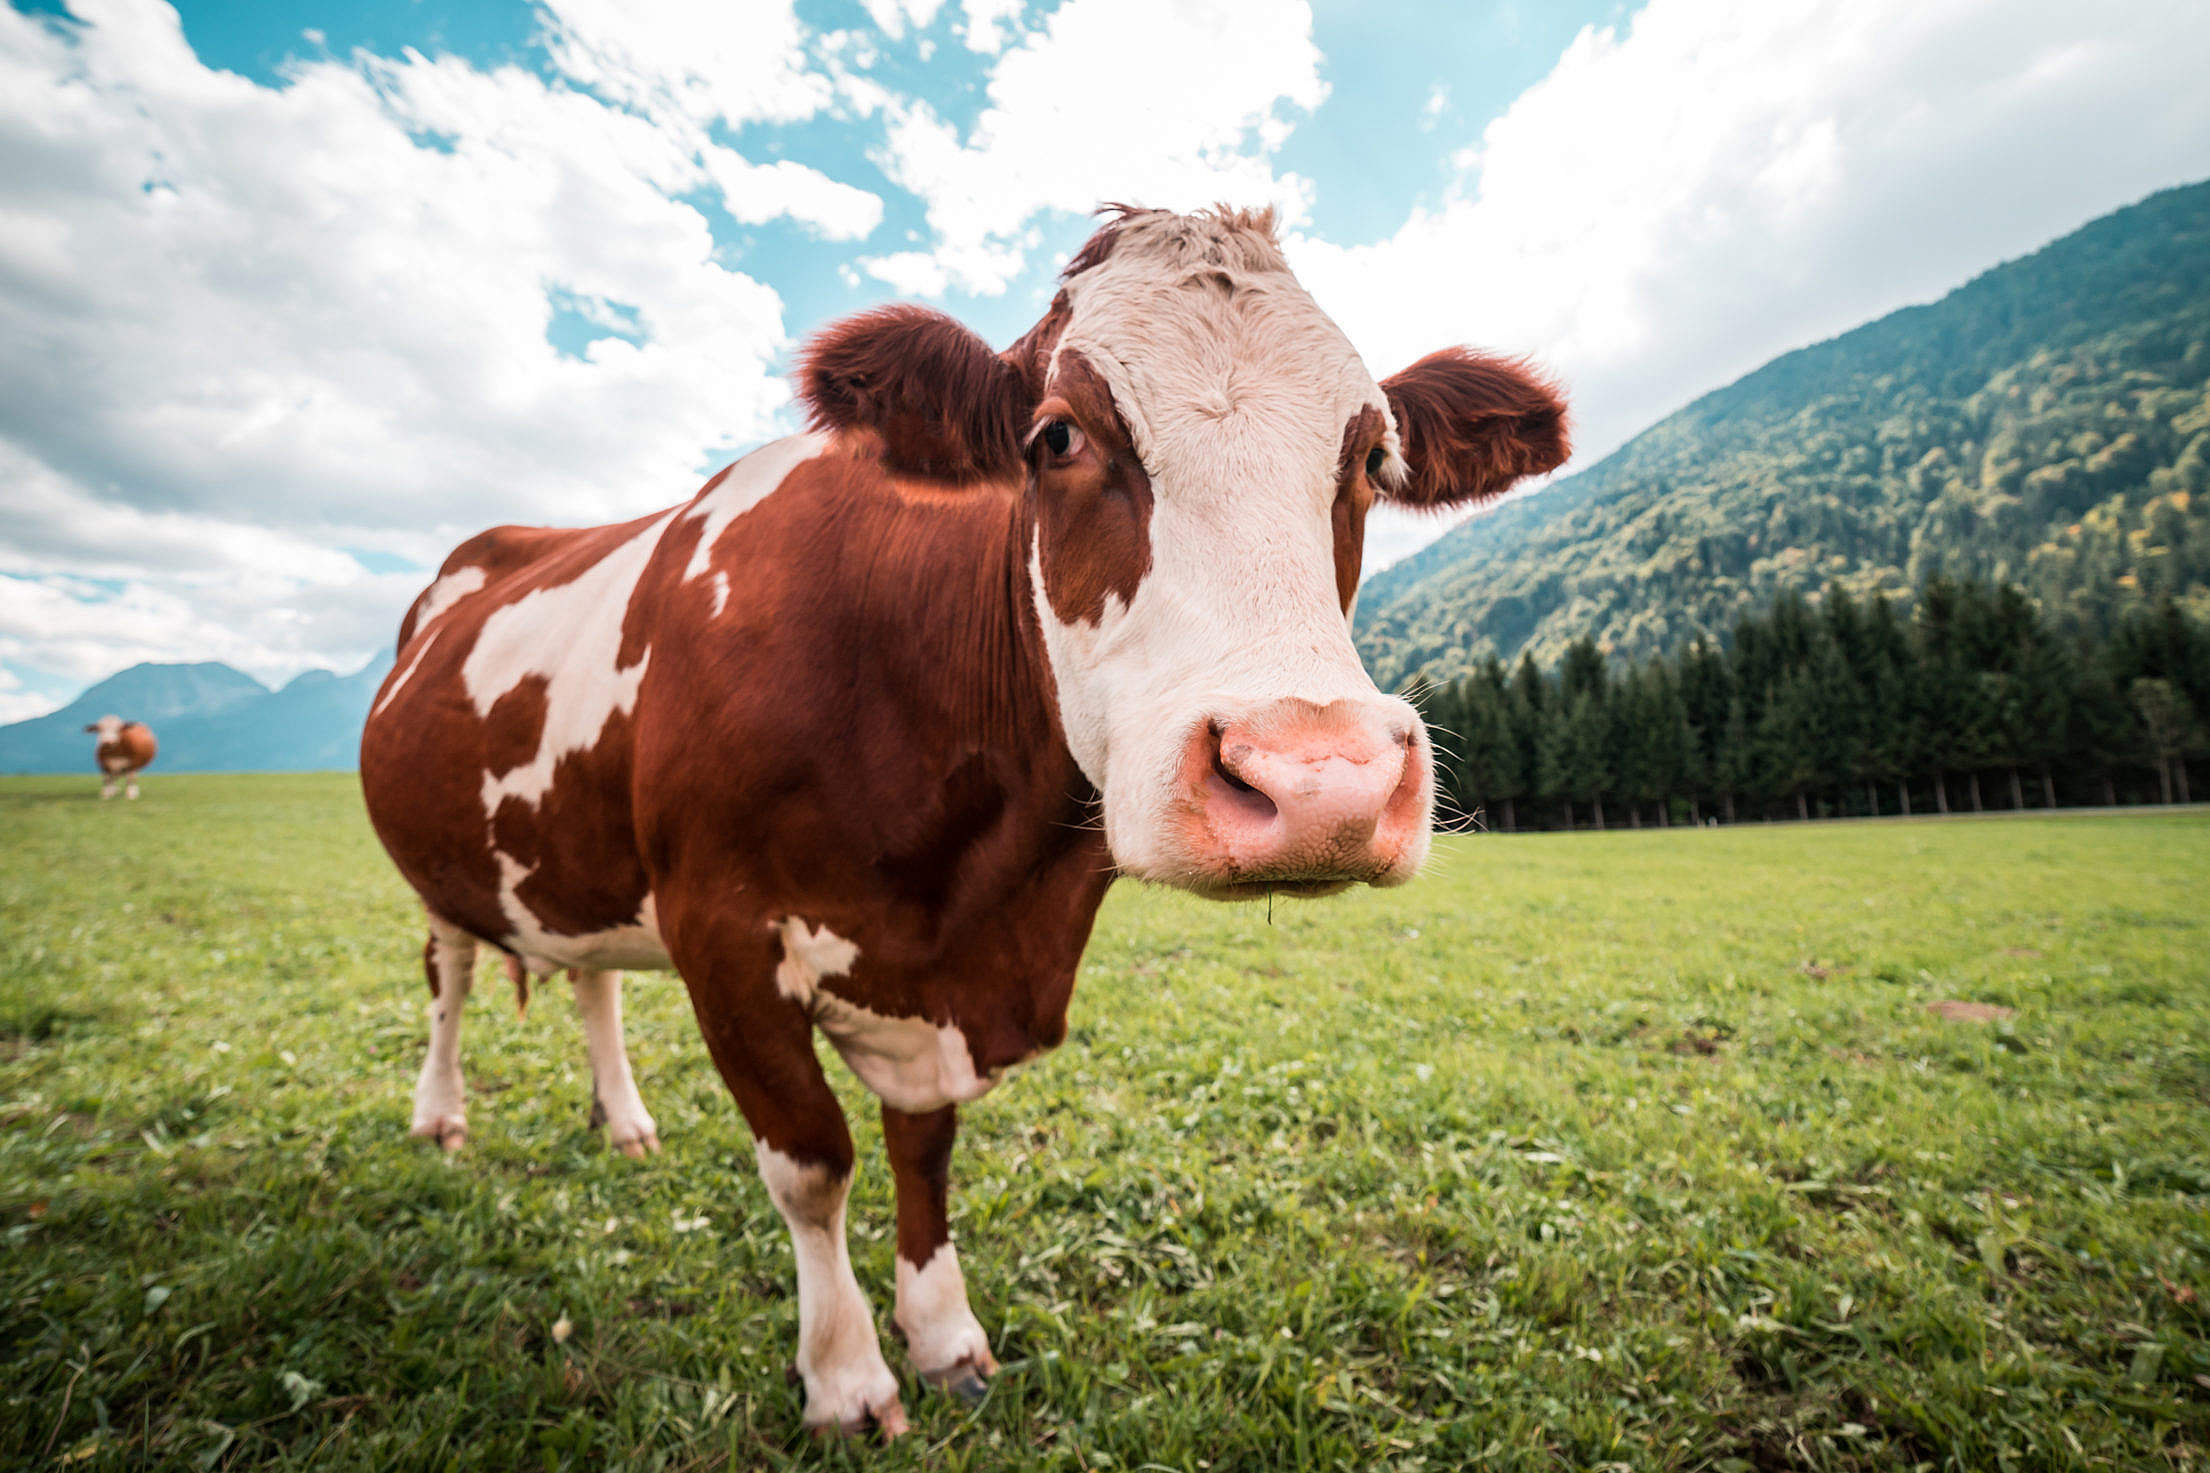 Brown and White Cow in Pasture Free Stock Photo